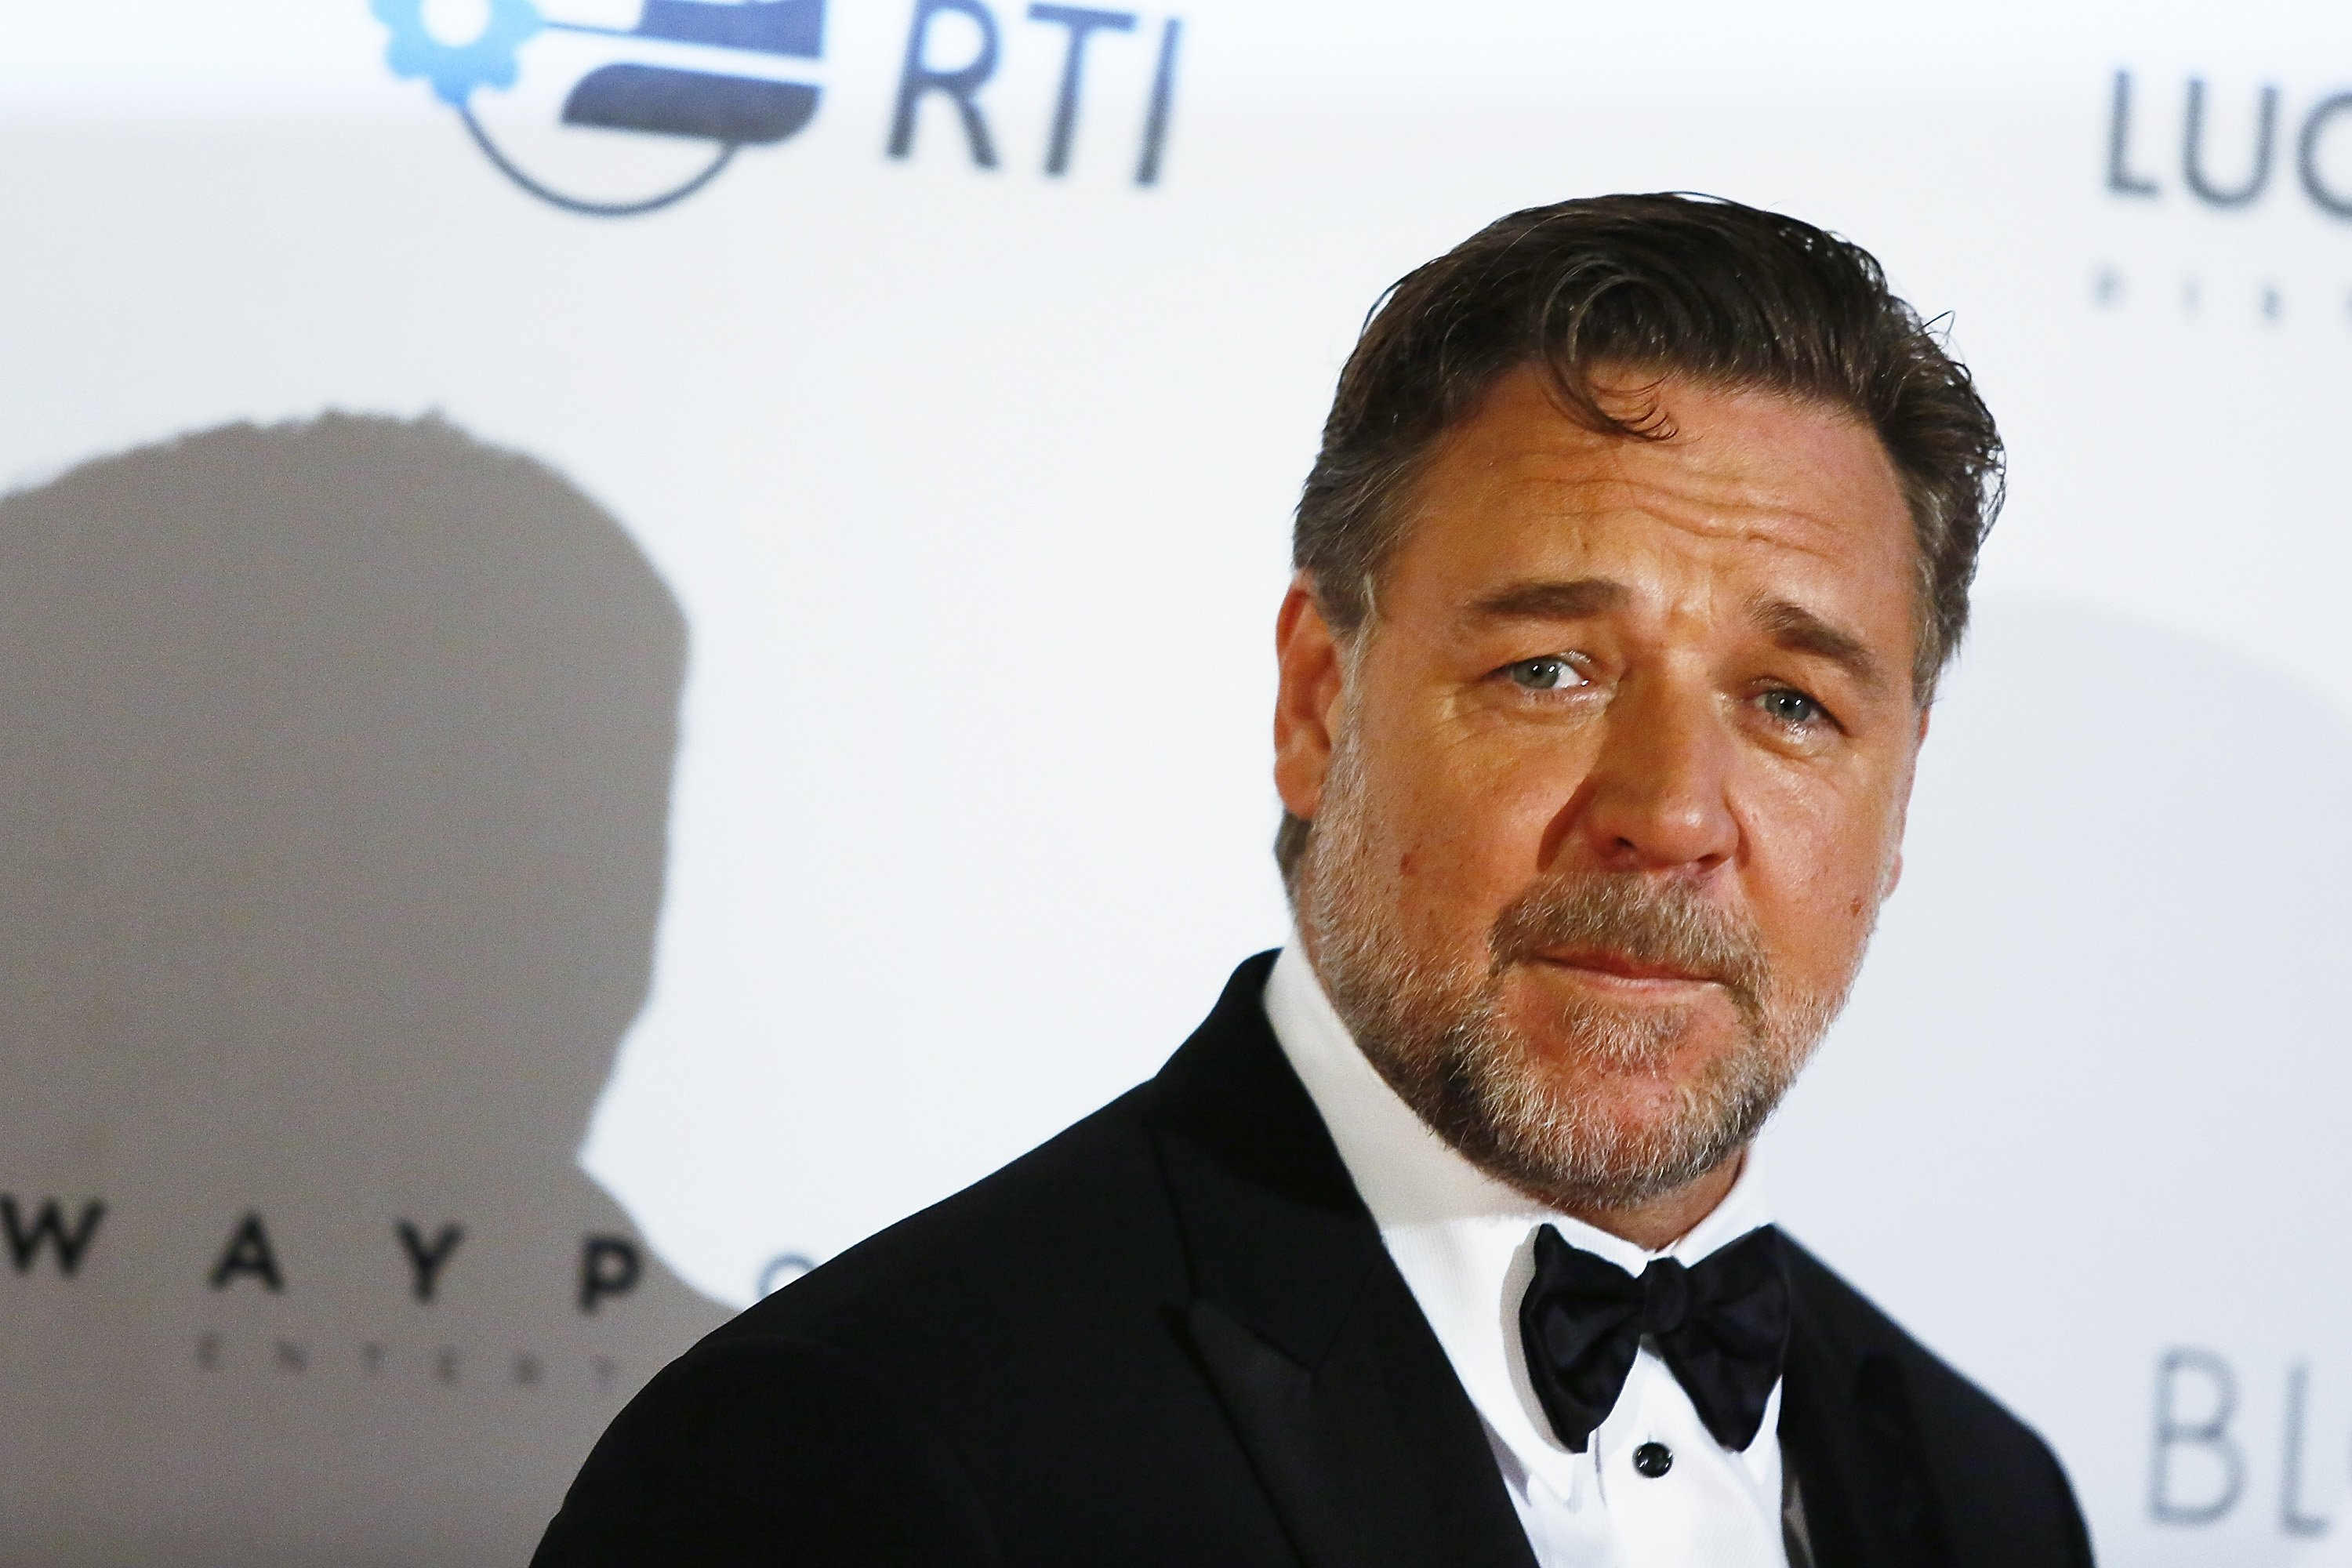 """Russell Crowe during the 2016 premiere of """"The Nice Guys"""" in Italy. 